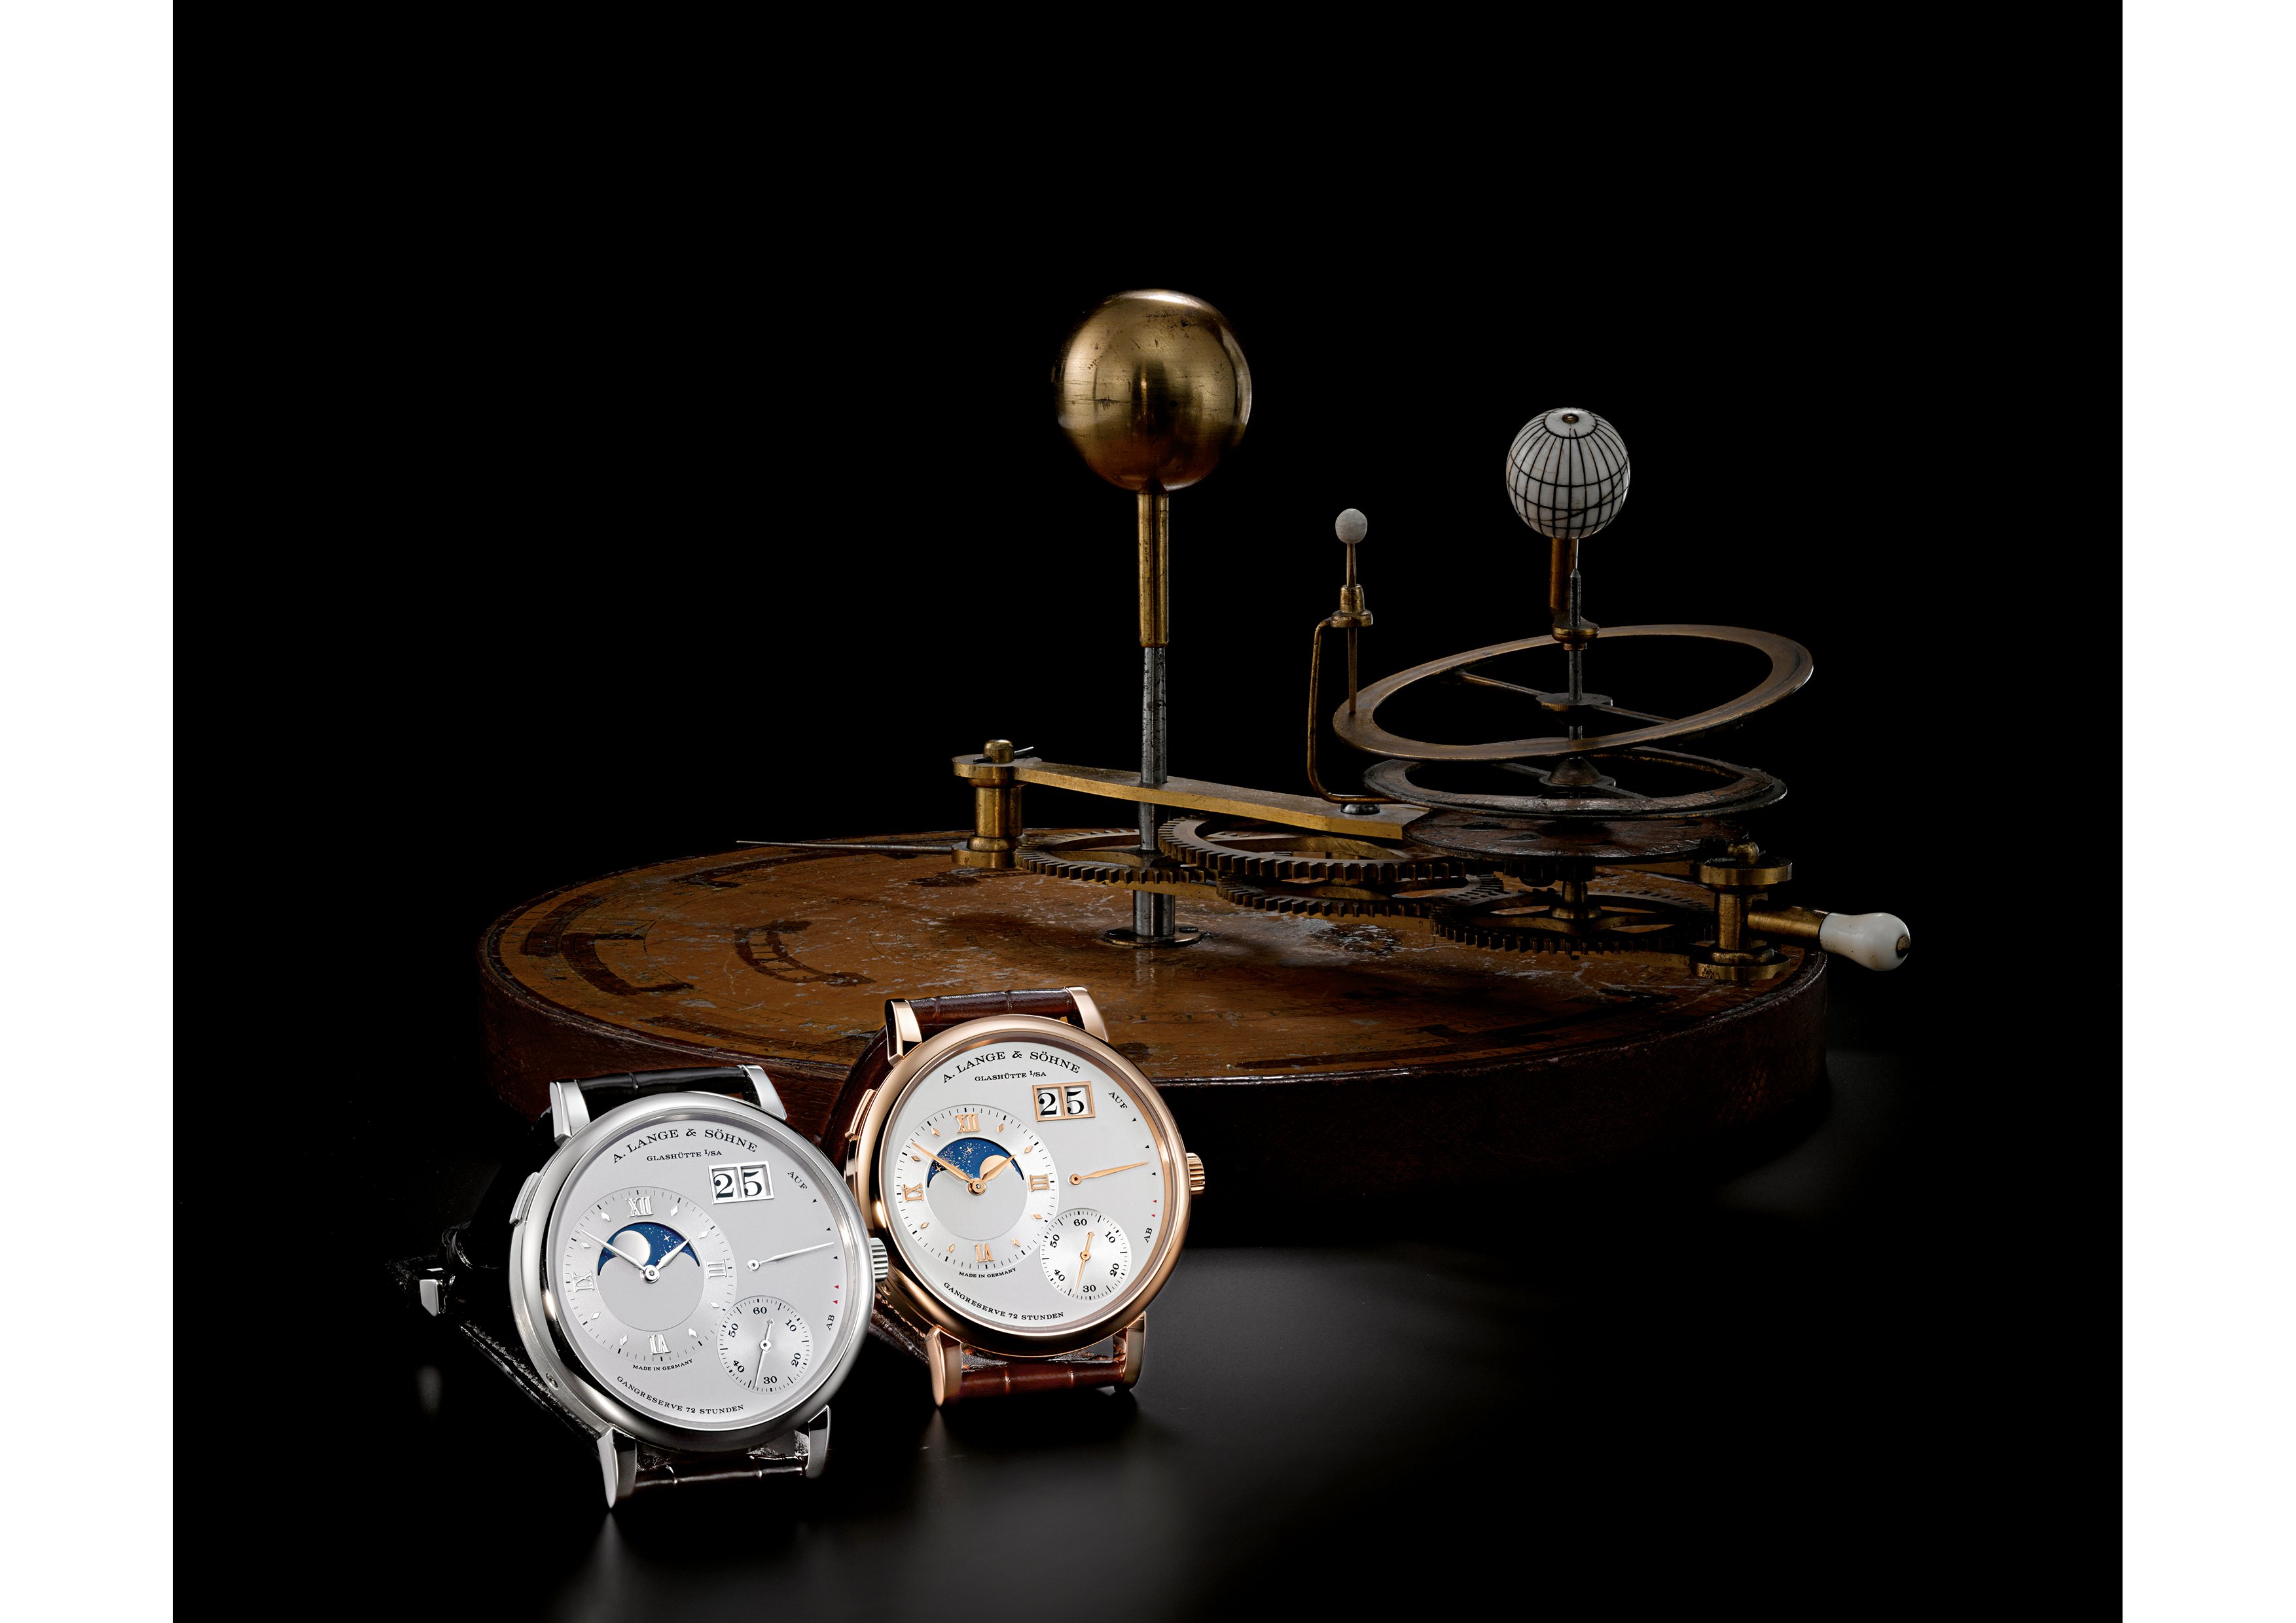 Two Grand Lange 1 Moon Phase watches in front of a tellurion, by William and Samuel Jones (London ca. 1800) at the Dresden Mathematisch-Physikalischer Salon